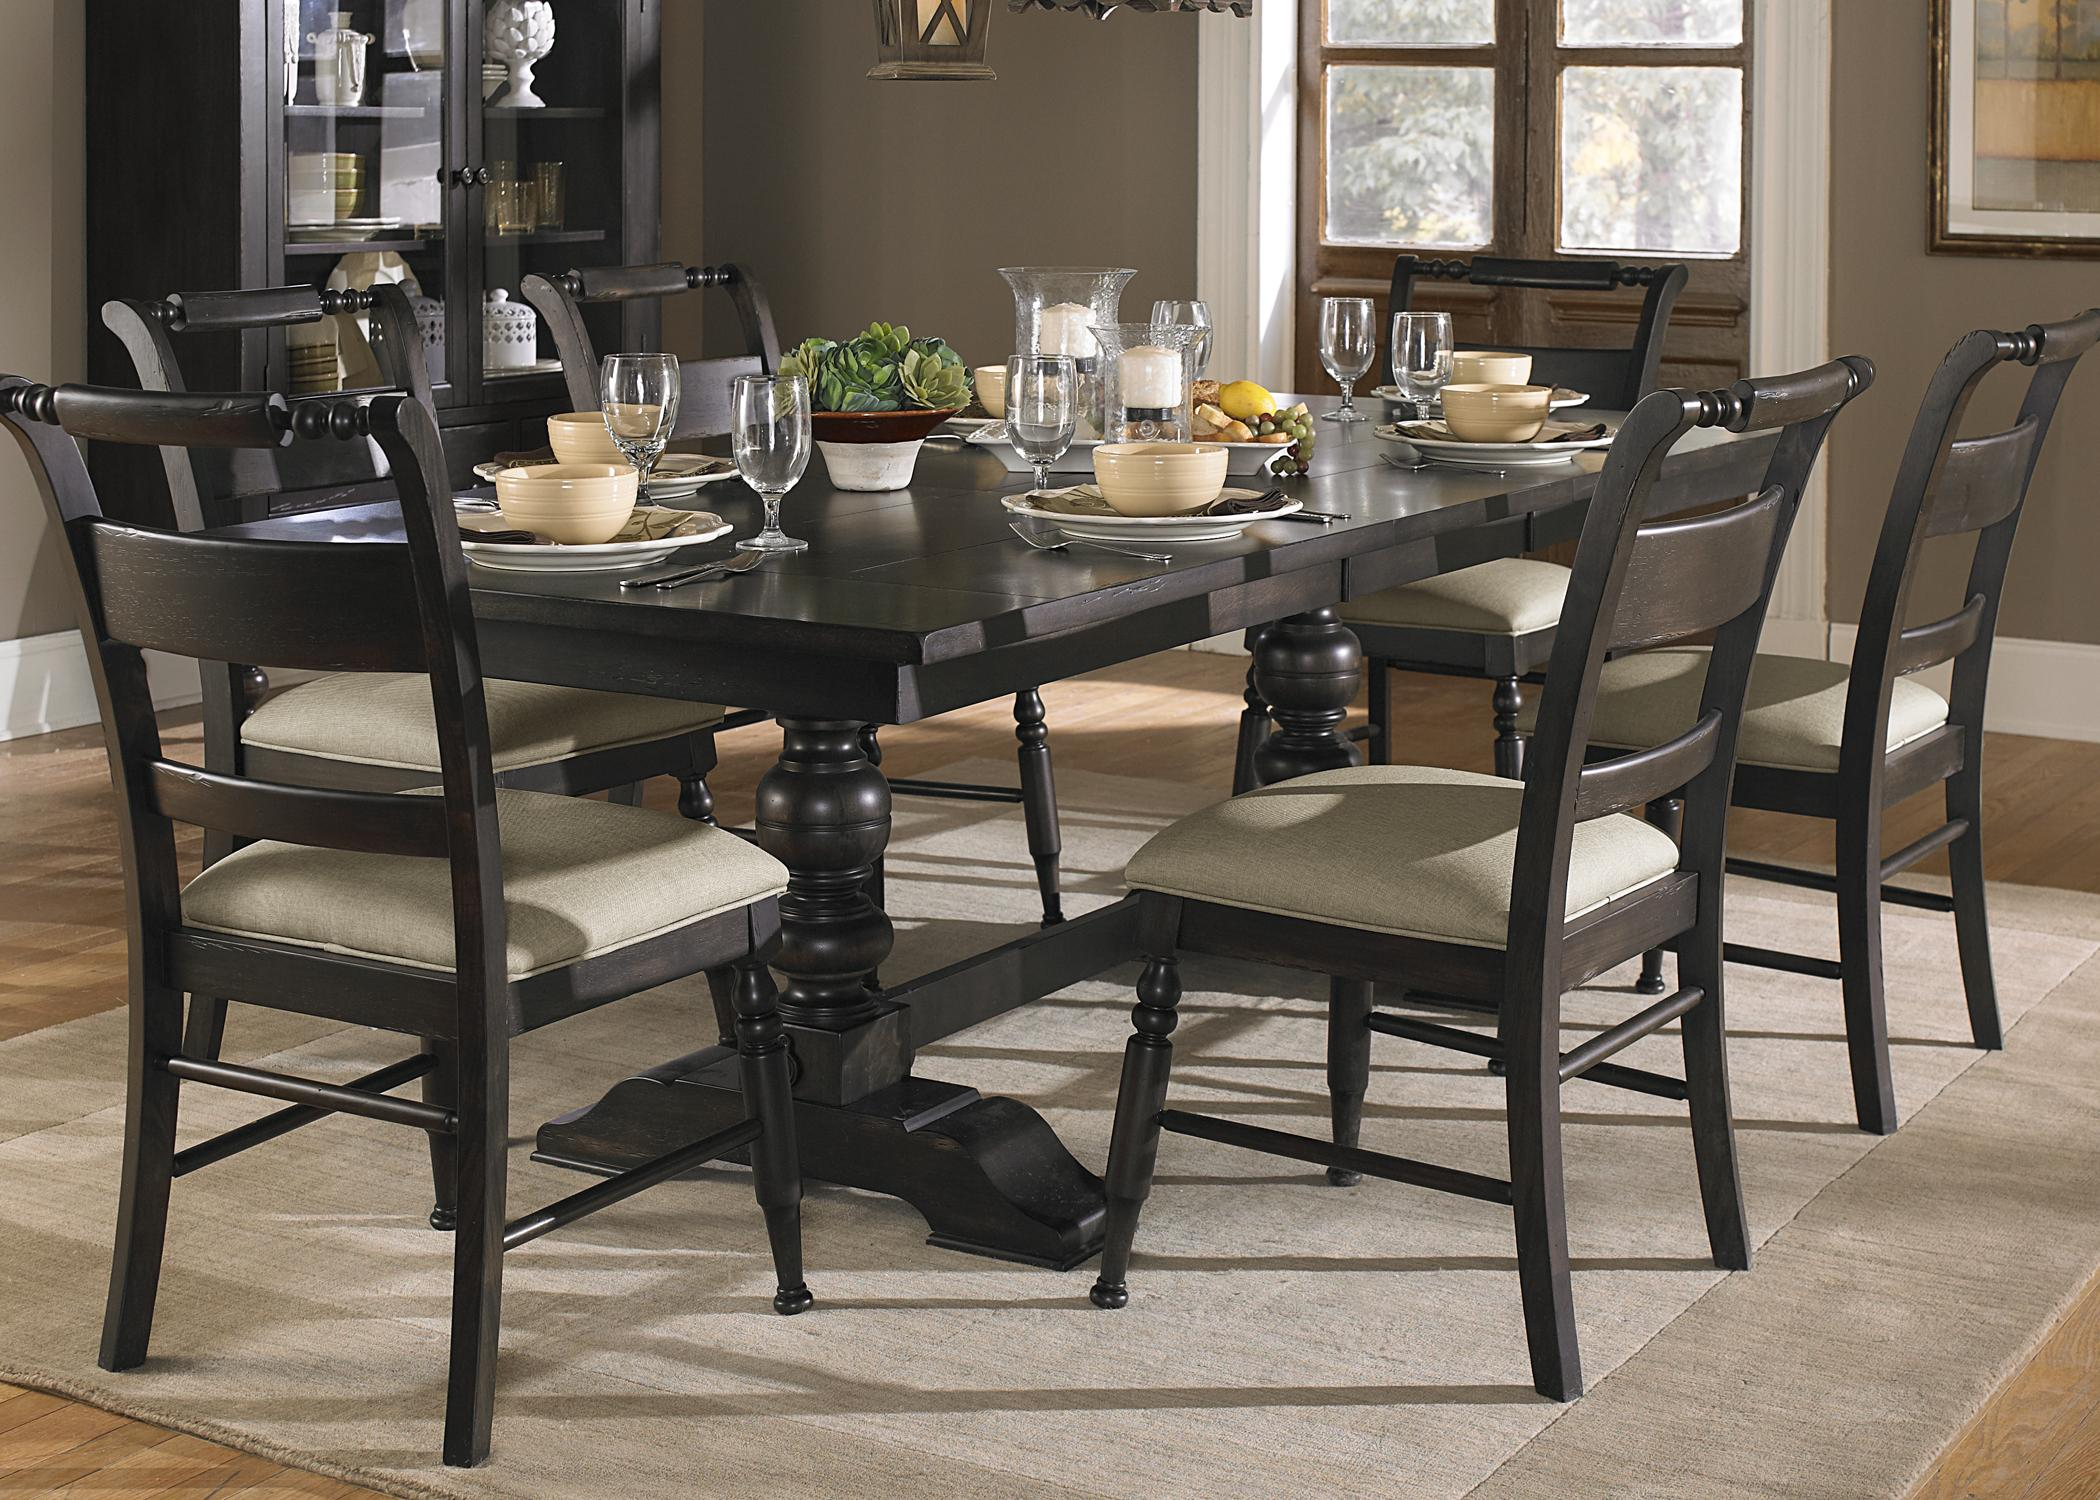 Dining Room Table And Chairs Brilliant 7 Piece Trestle Dining Room Table Setliberty Furniture  Wolf Decorating Design